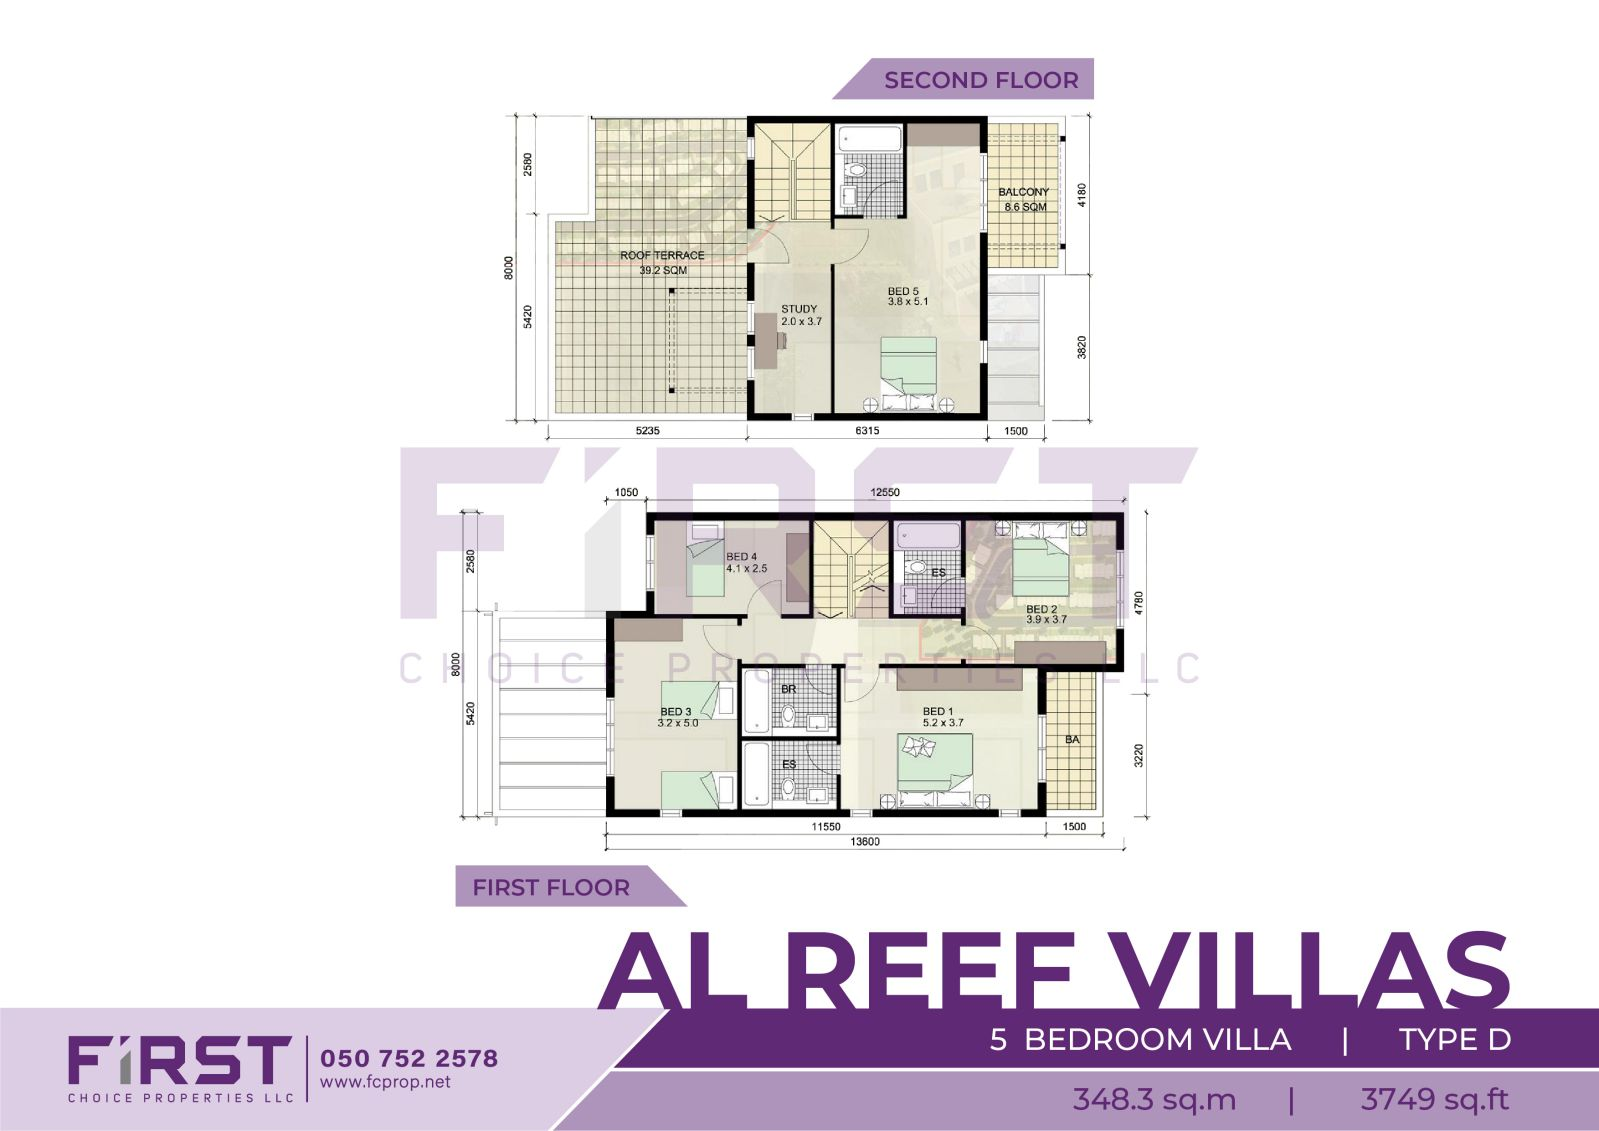 Floor Plan of 5 Bedroom Villa Type D in Al Reef Villas Al Reef Abu Dhabi UAE 348.3 sq.m 3749 sq.ft 1.jpg